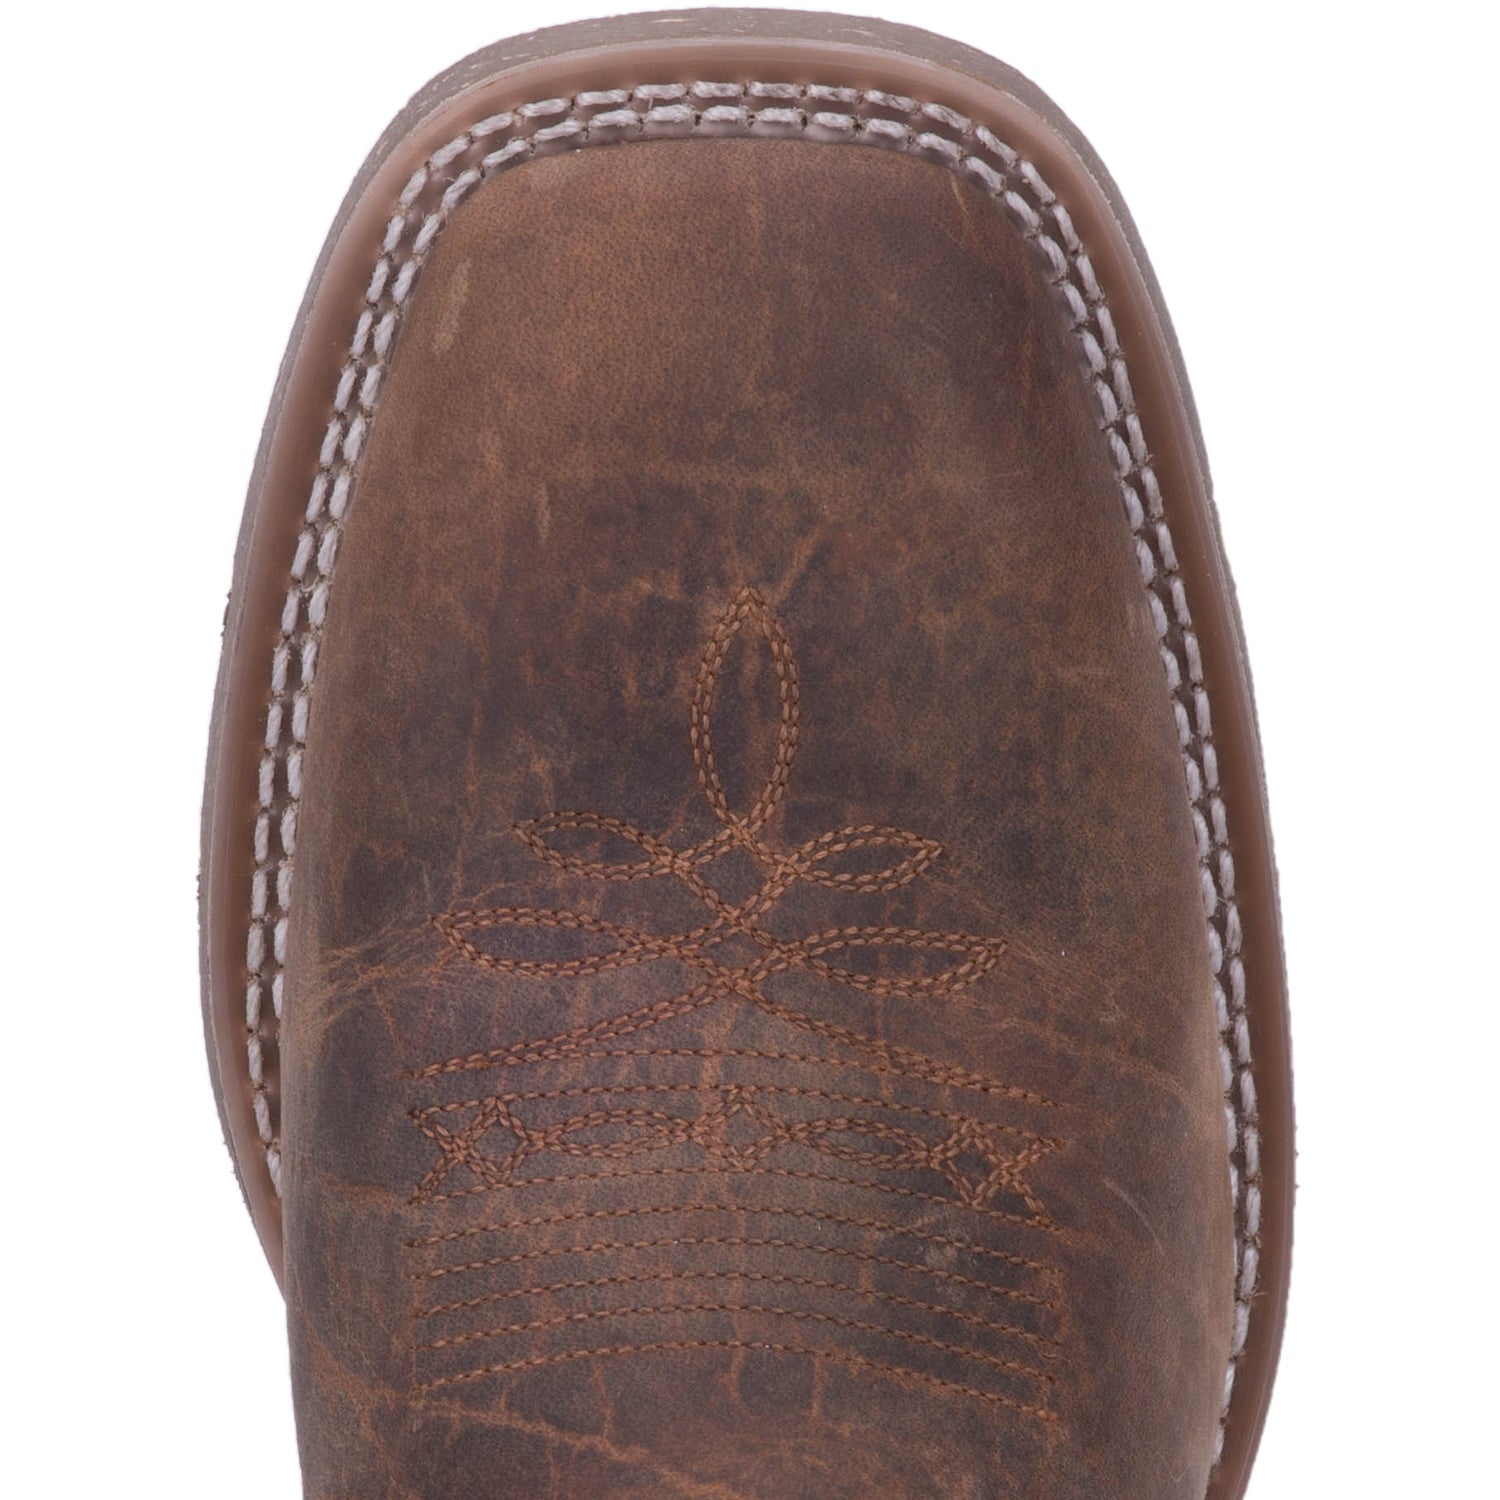 DURANT LEATHER BOOT 4252387606570